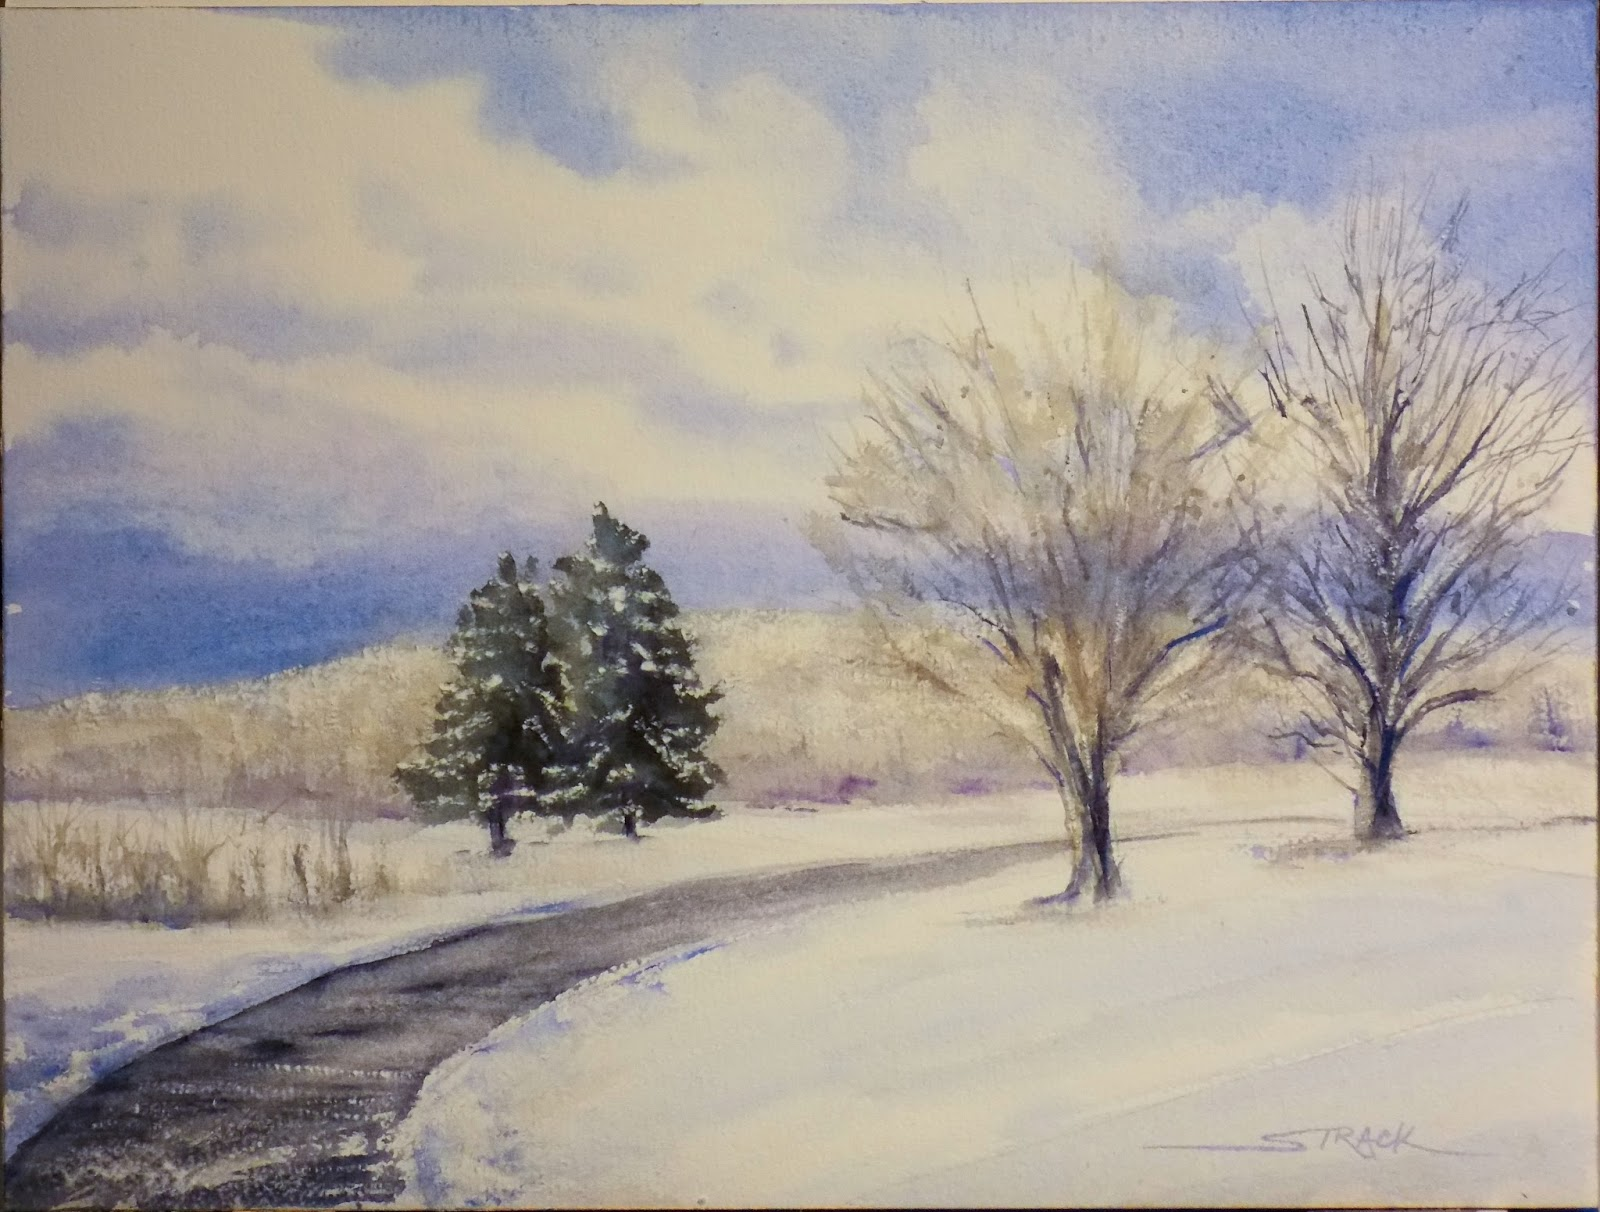 Faux Paint Techniques Annie Strack News Painting Snowy Landscapes In Watercolor